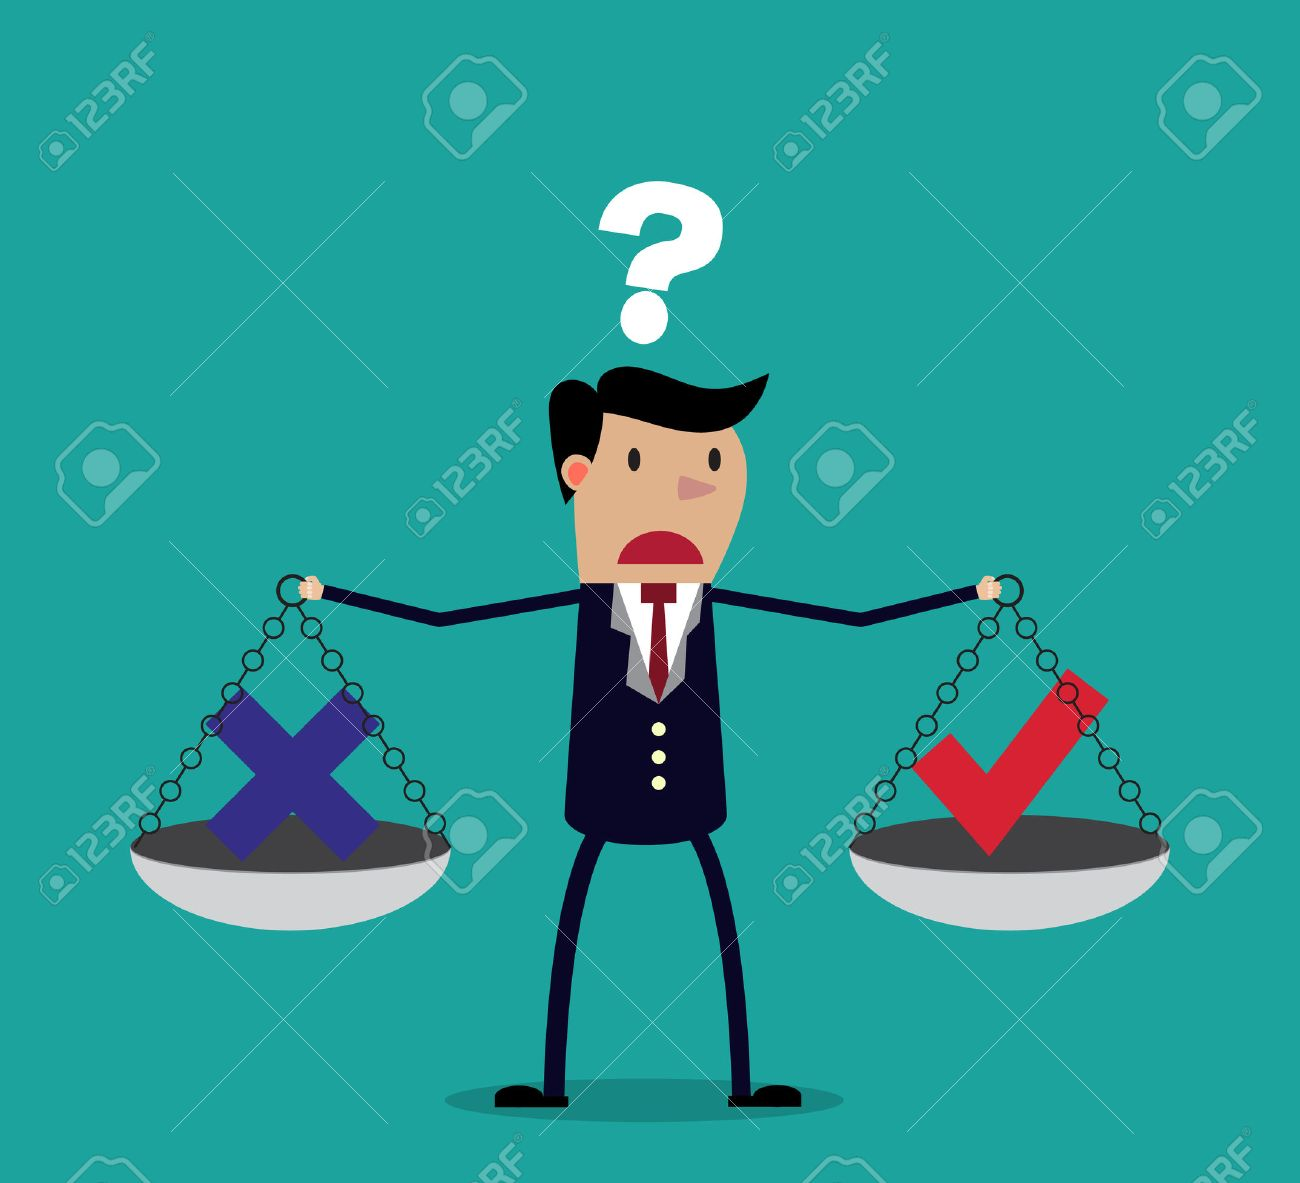 Cartoon businessman balancing cross and tick symbol on two weighing trays on both arms. Creative vector illustration for ethical dilemma concept isolated on green background. - 47844808